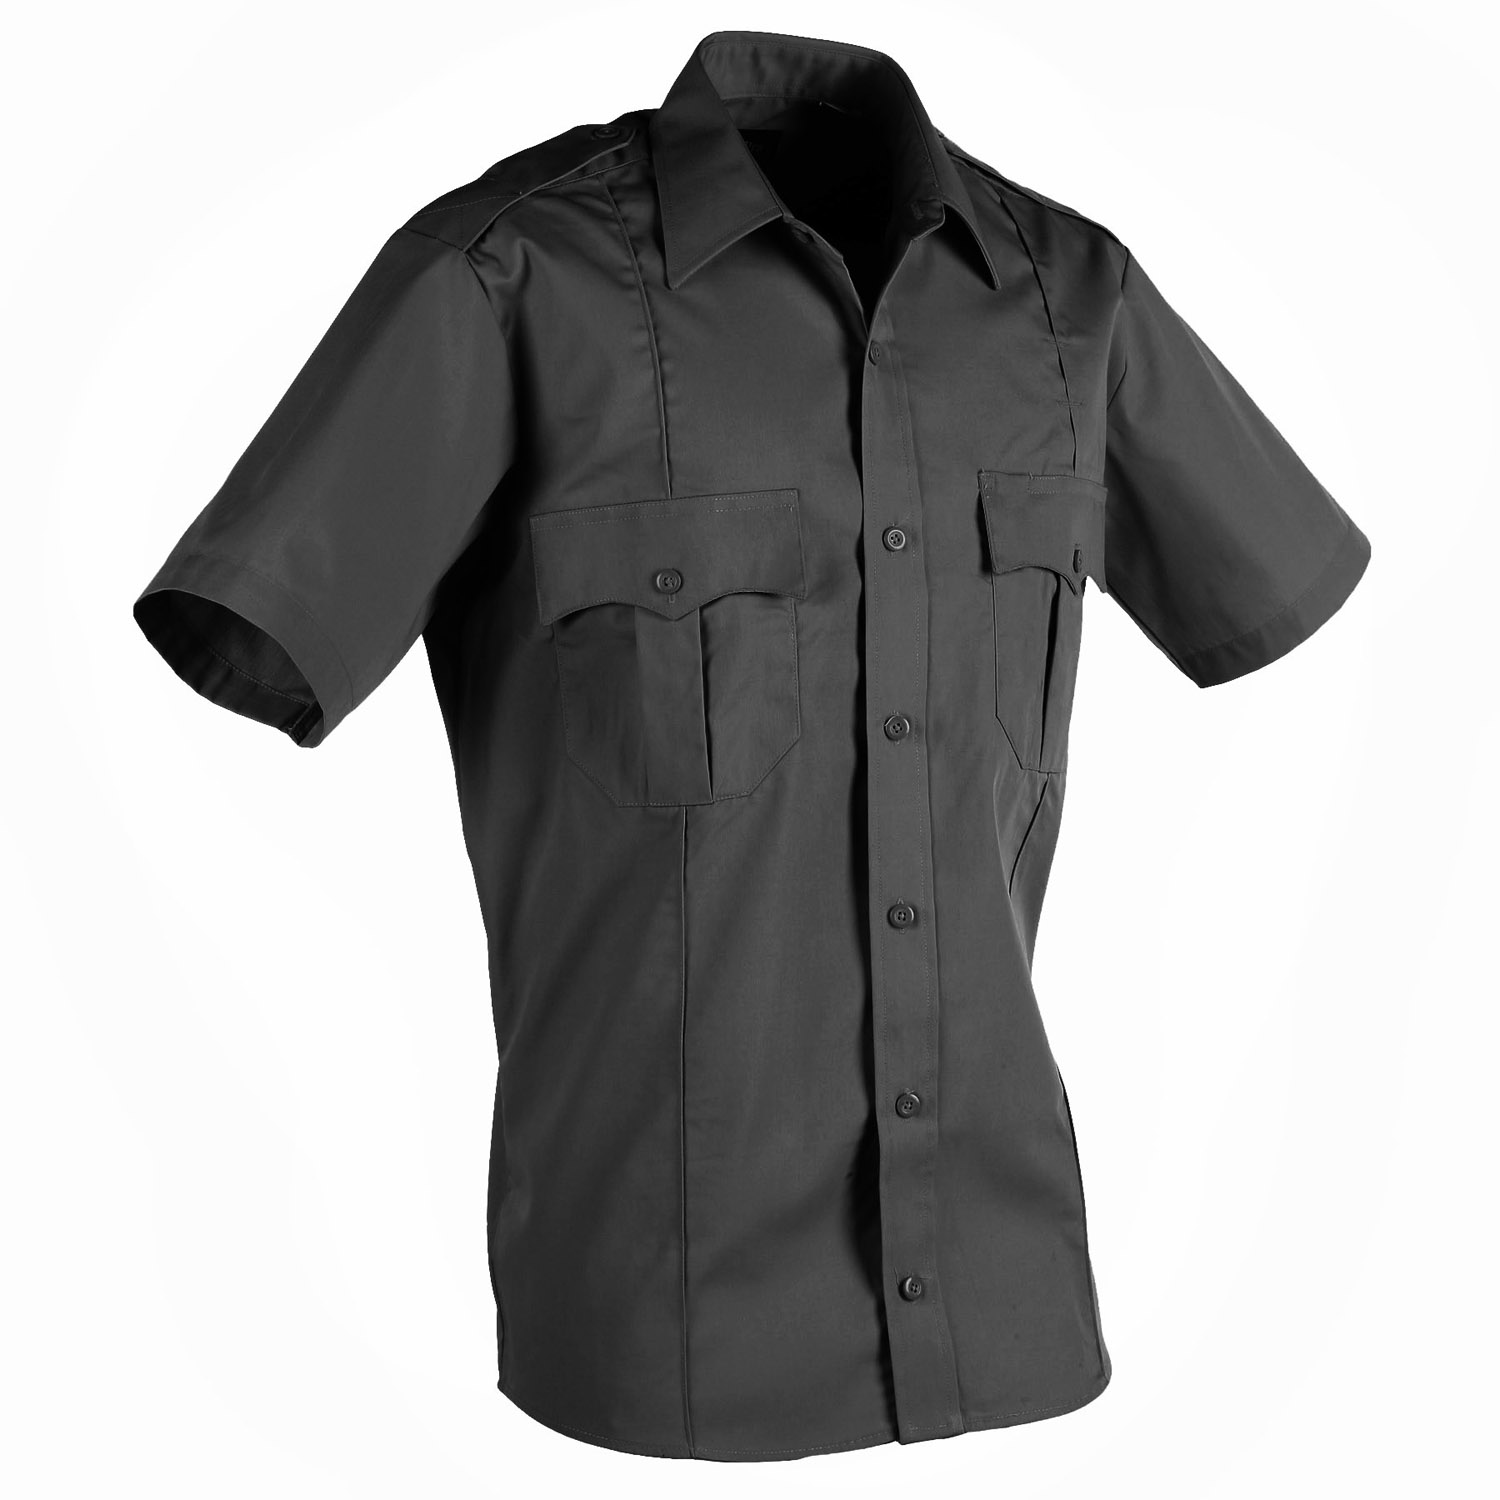 ab190ef7dc2bae LawPro Poly Cotton Short Sleeve Premium Shirt